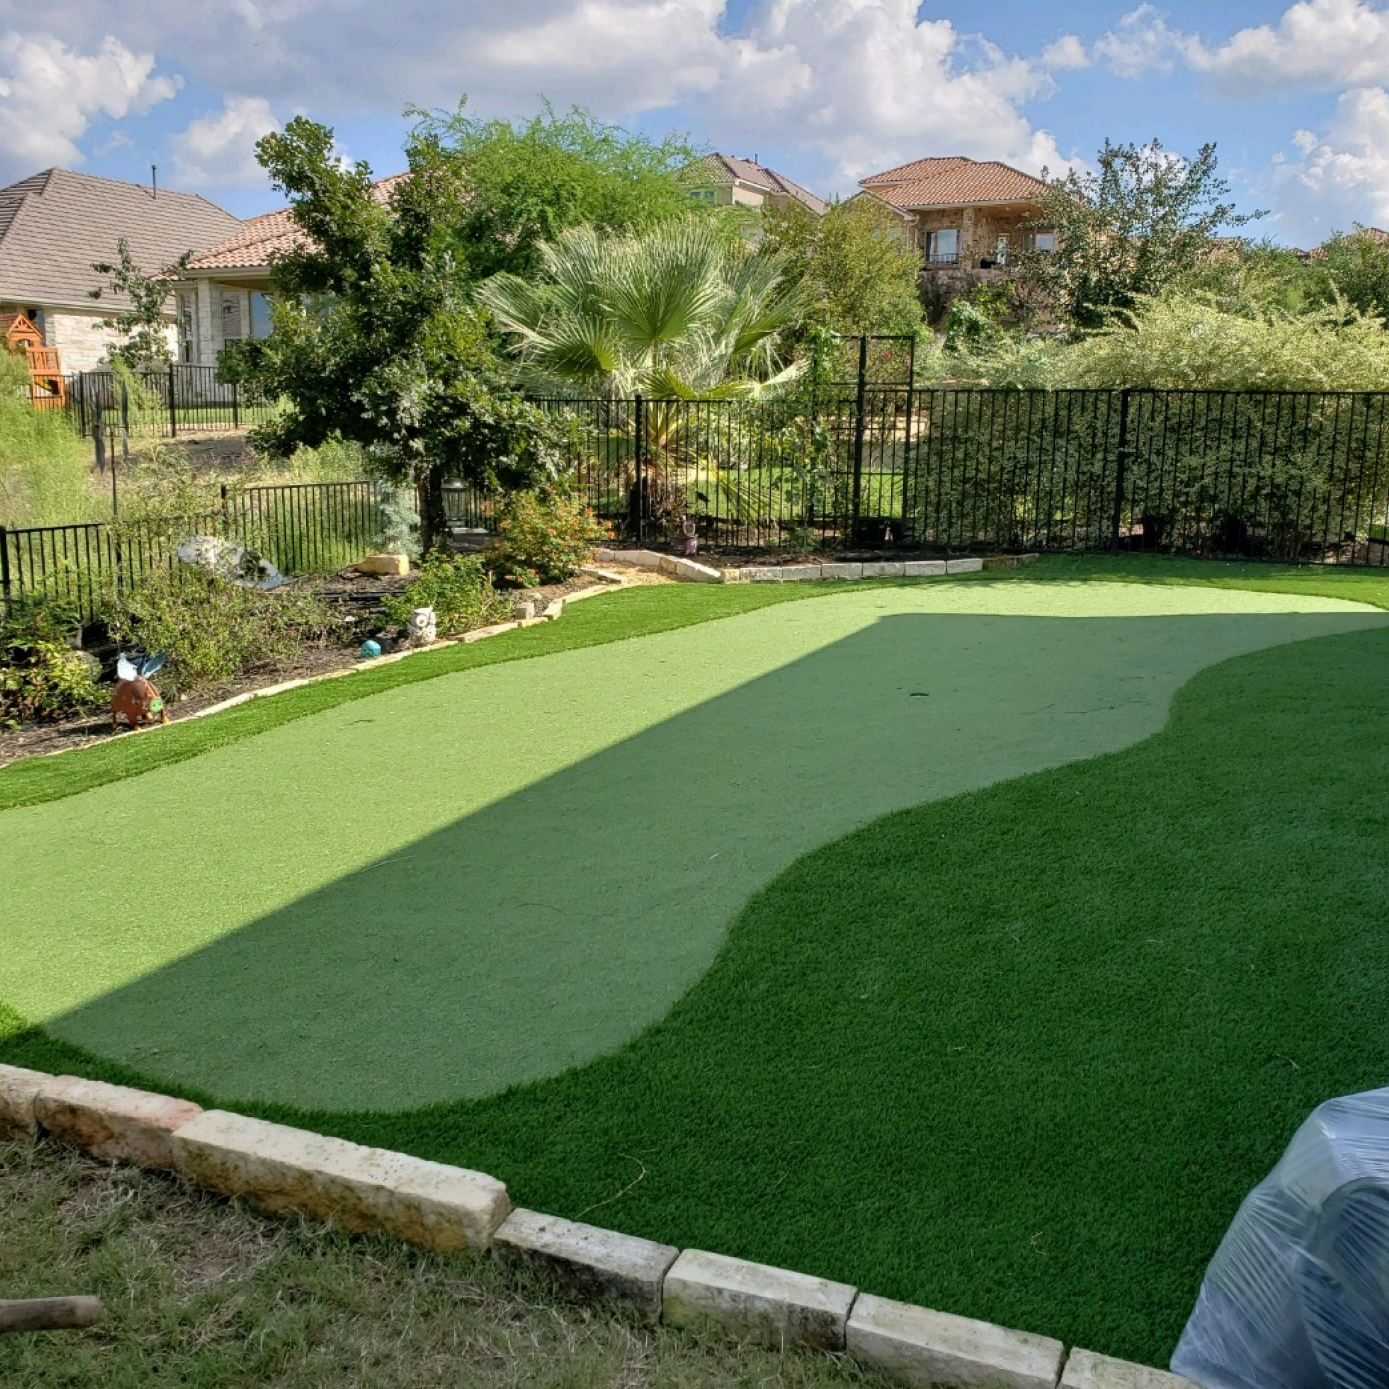 Pro Putt-44 artificial turf,synthetic turf,artificial turf installation,how to install artificial turf,used artificial turf,fake green grass,green grass carpet,turf prices,artificial grass installers,artificial turf installers,artificial turf,synthetic turf,artificial turf installation,how to install artificial turf,used artificial turf,artificial grass installers,artificial turf installers,fake g